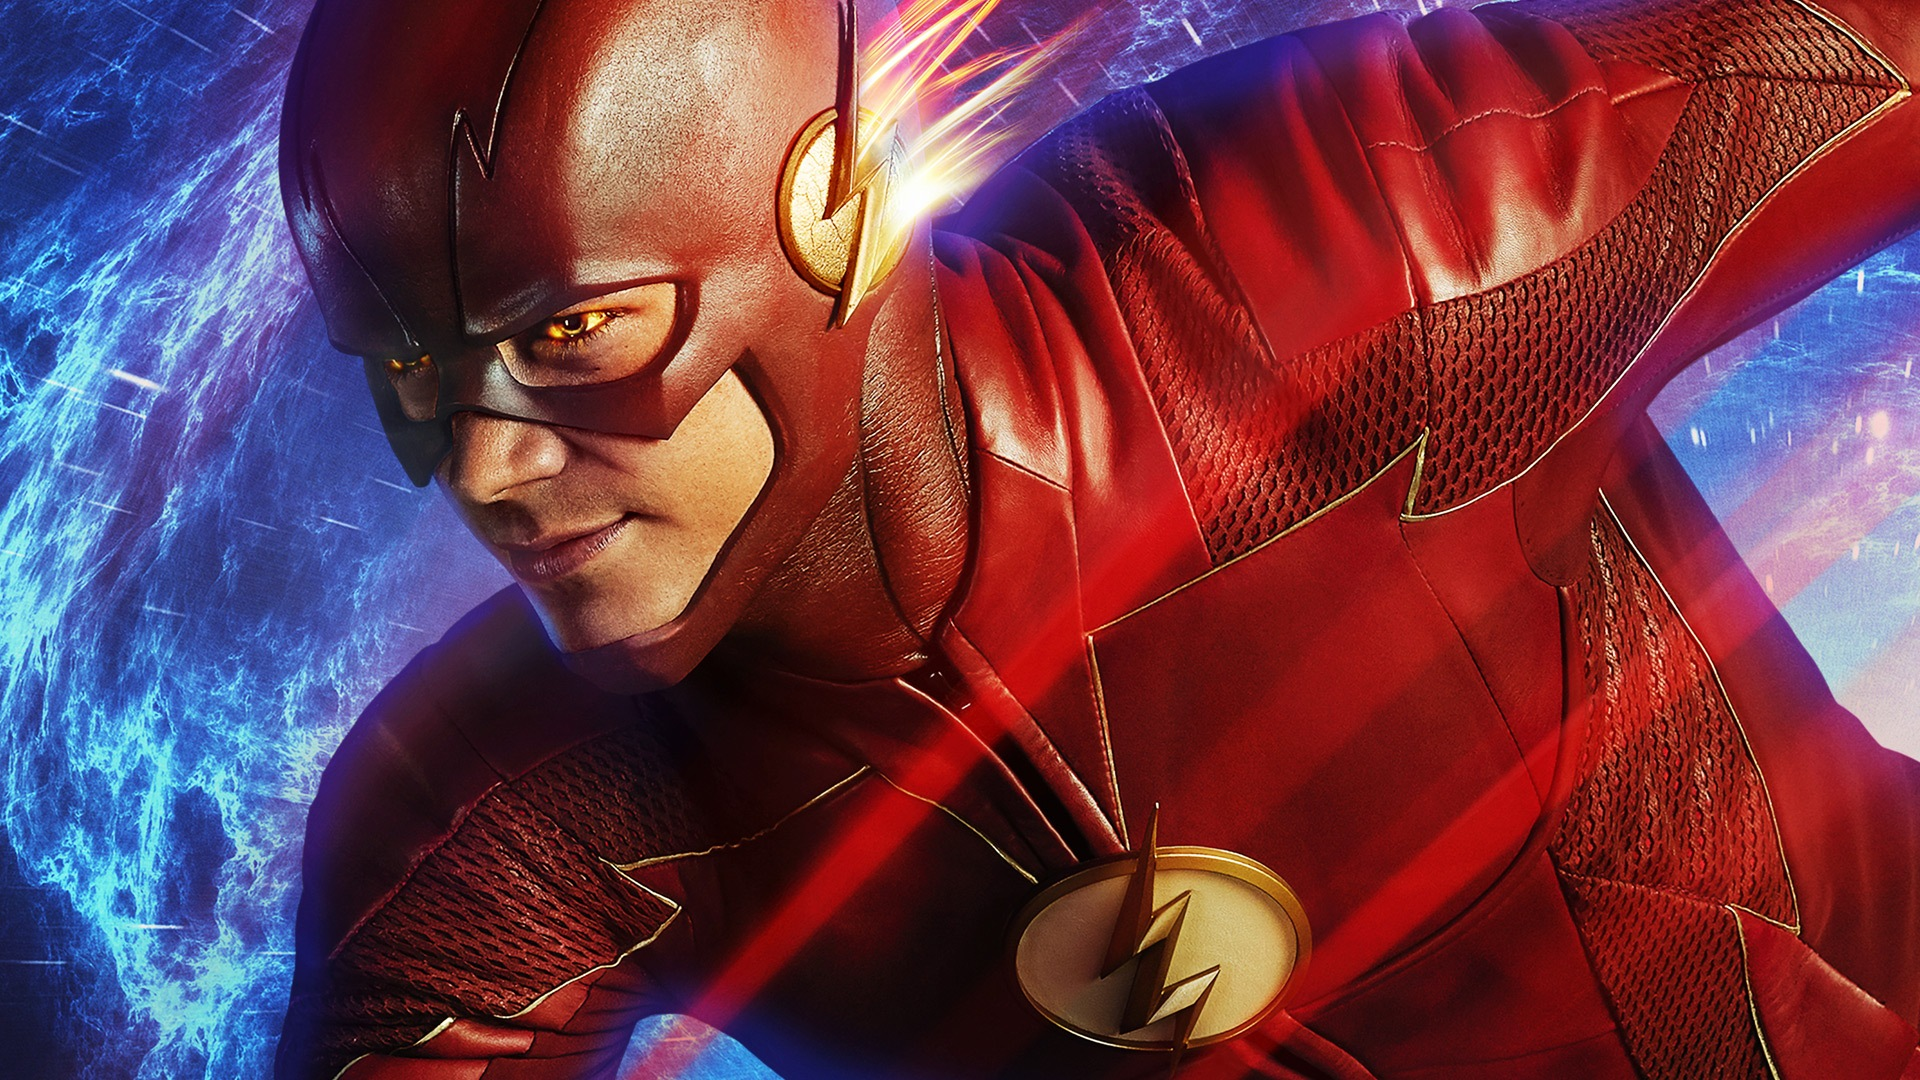 The Flash (2014) Wallpapers, Pictures, Images The Flash Wallpaper